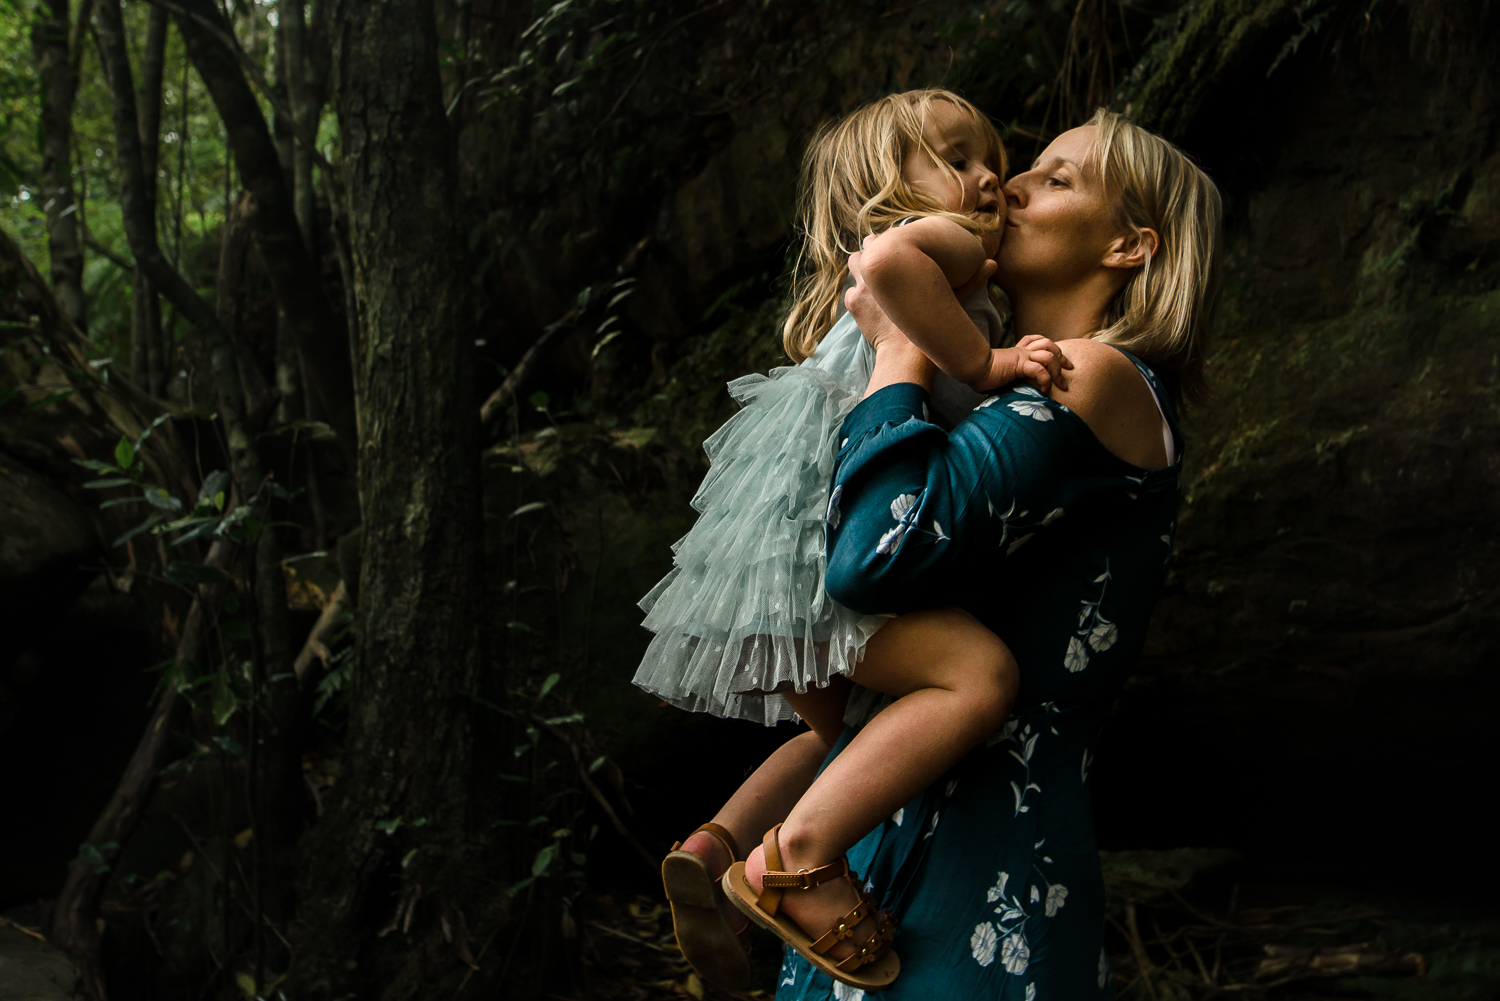 cindycavanagh-sydney-lifestyle-motherhood-photographer (2 of 41).JPG